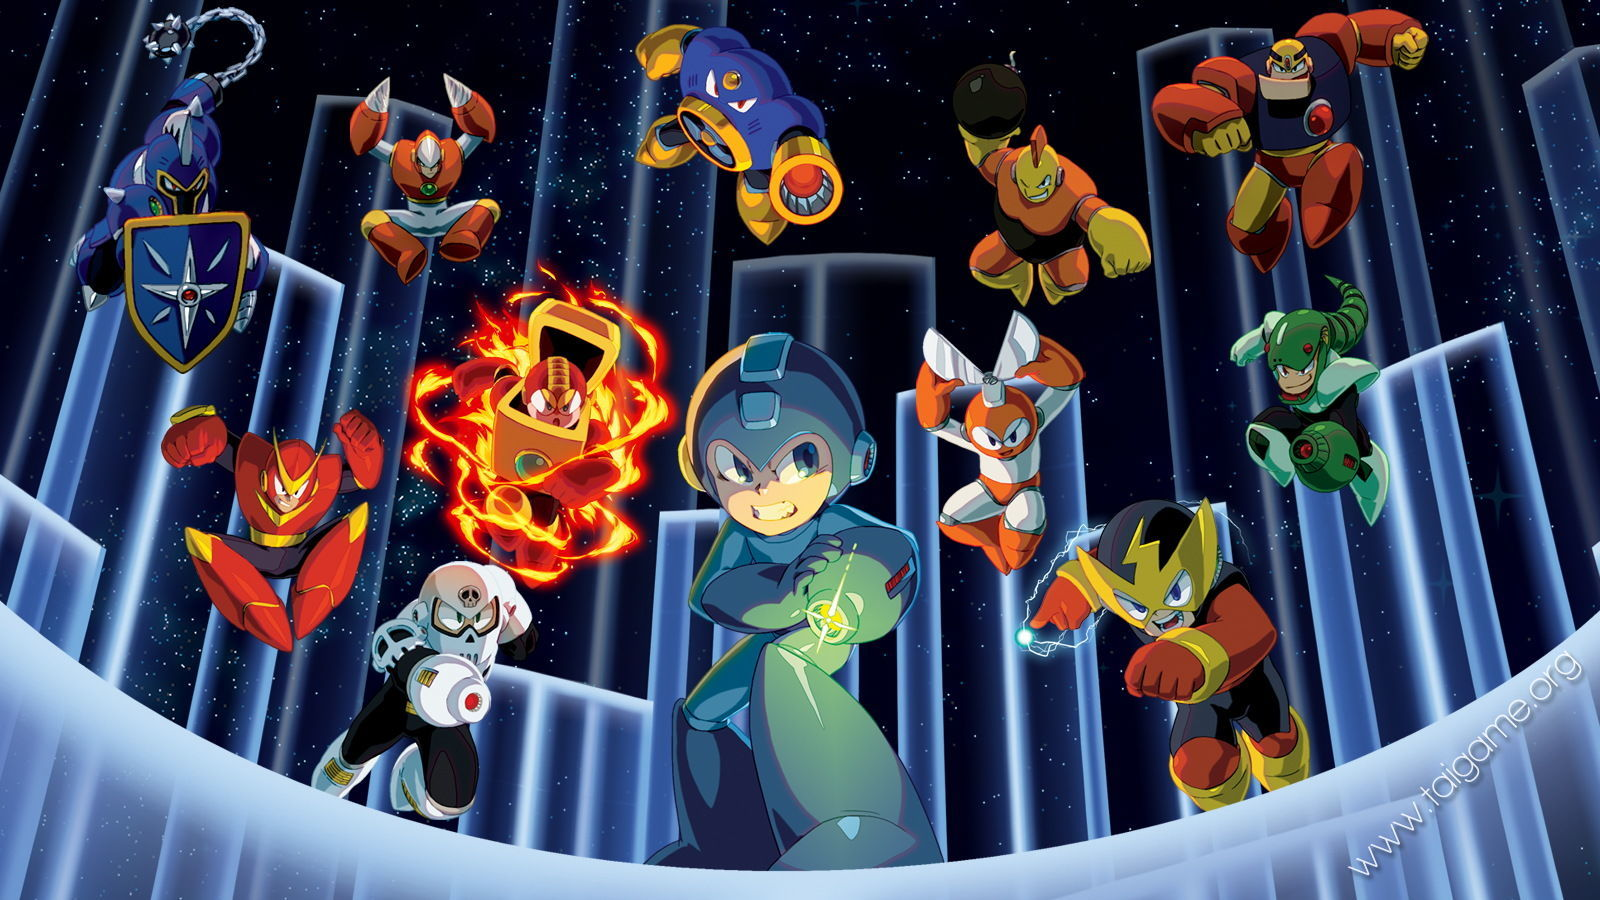 https://static.taigame.org/image/screenshot/201510/mega-man-legacy-collection-1.jpg